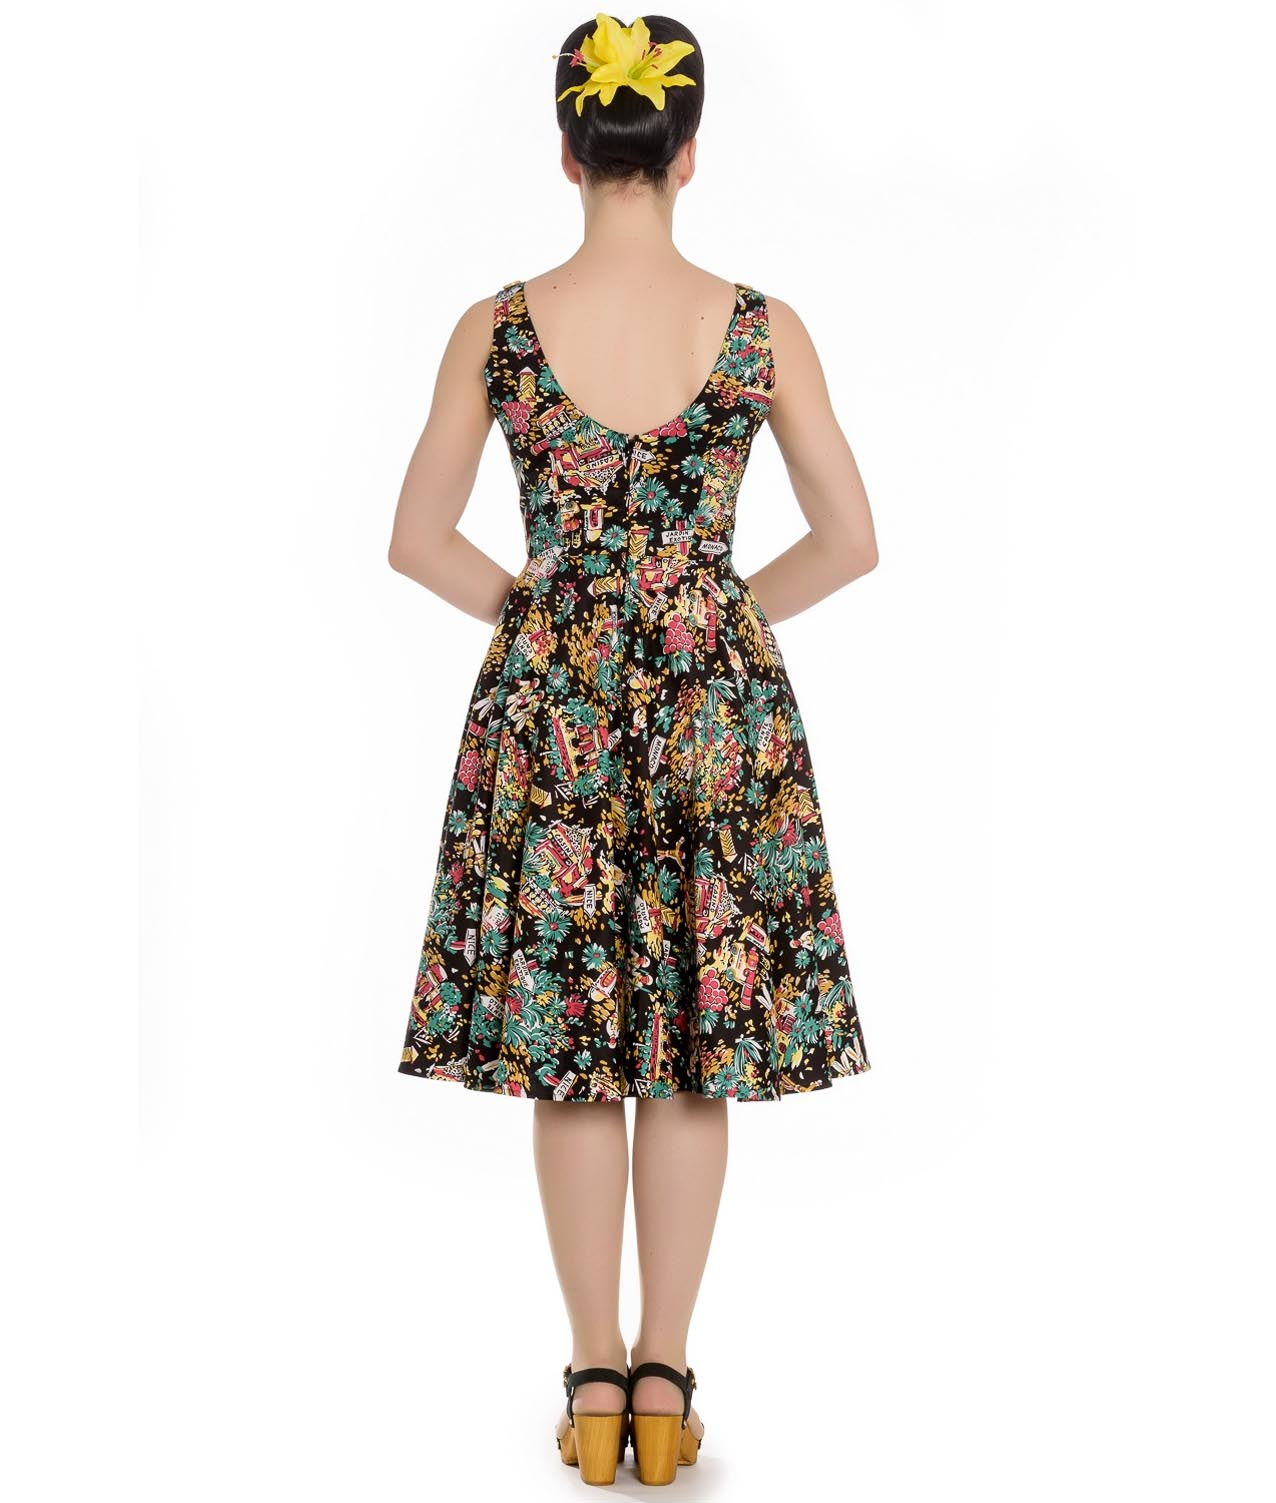 Hell-Bunny-Summer-50s-Black-Dress-MONTE-CARLO-Tropical-Holiday-All-Sizes thumbnail 5